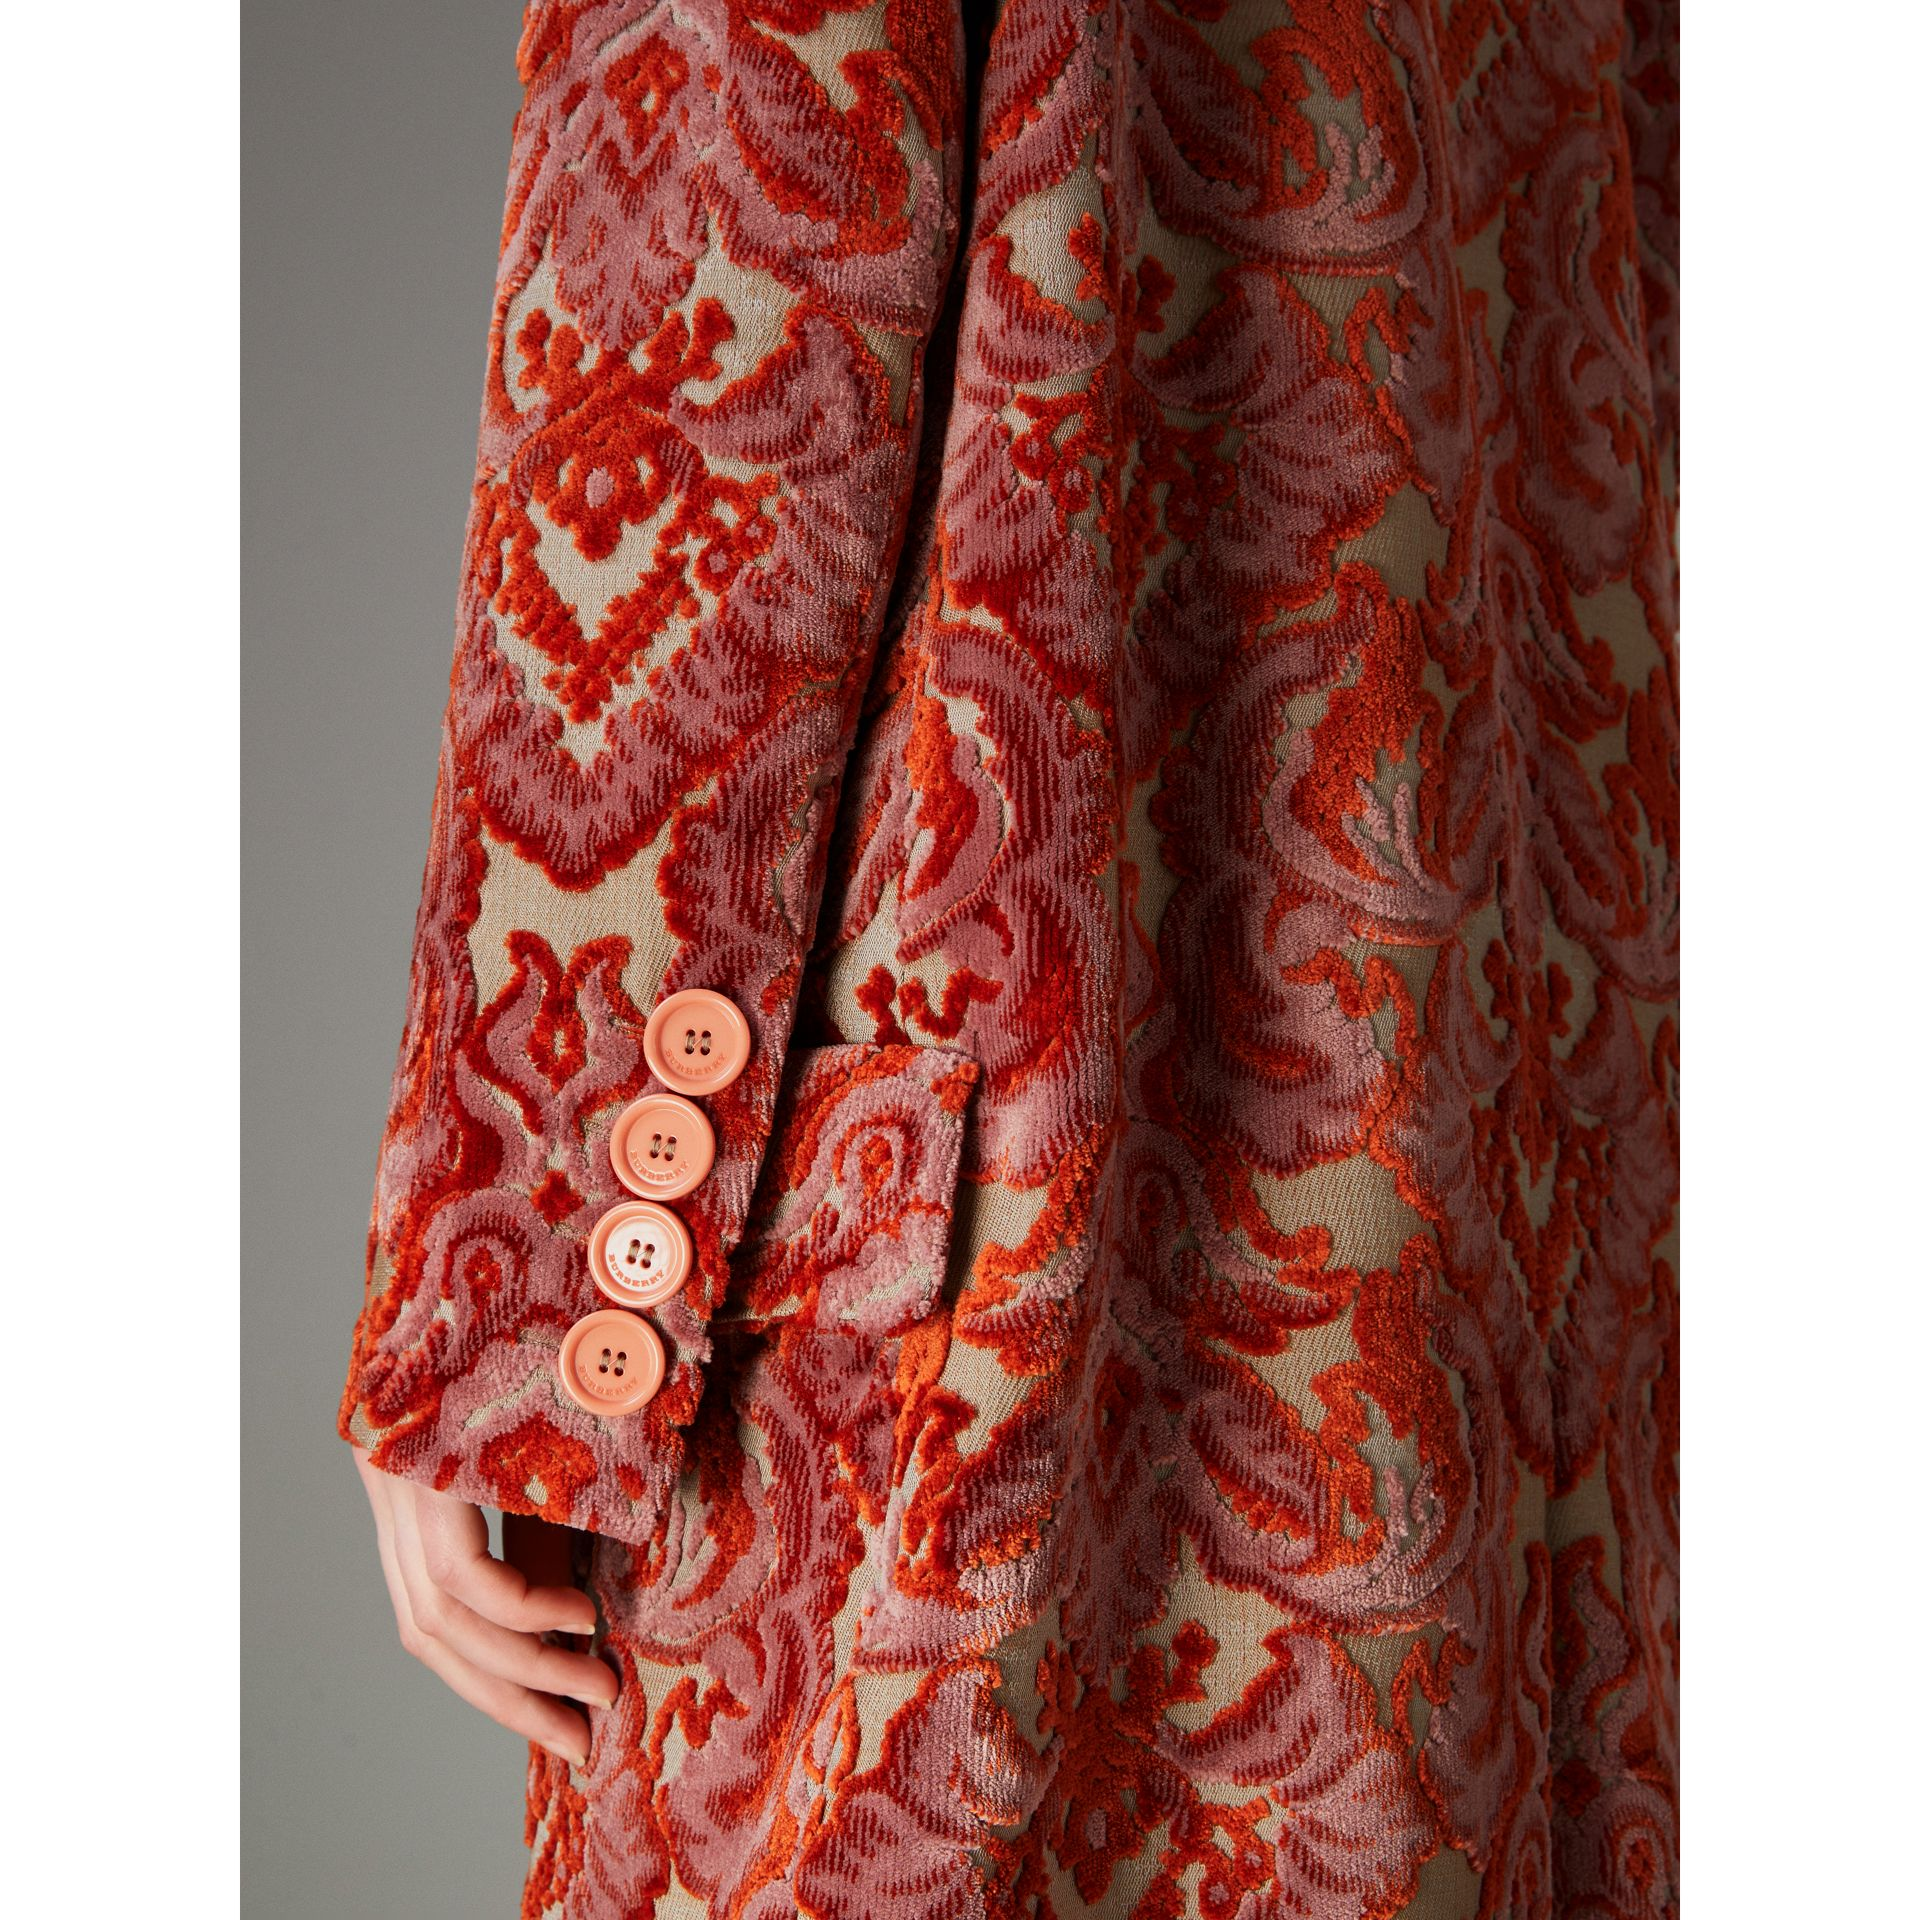 Damask Velvet Jacquard Tailored Coat in Rose Pink - Women | Burberry Australia - gallery image 1